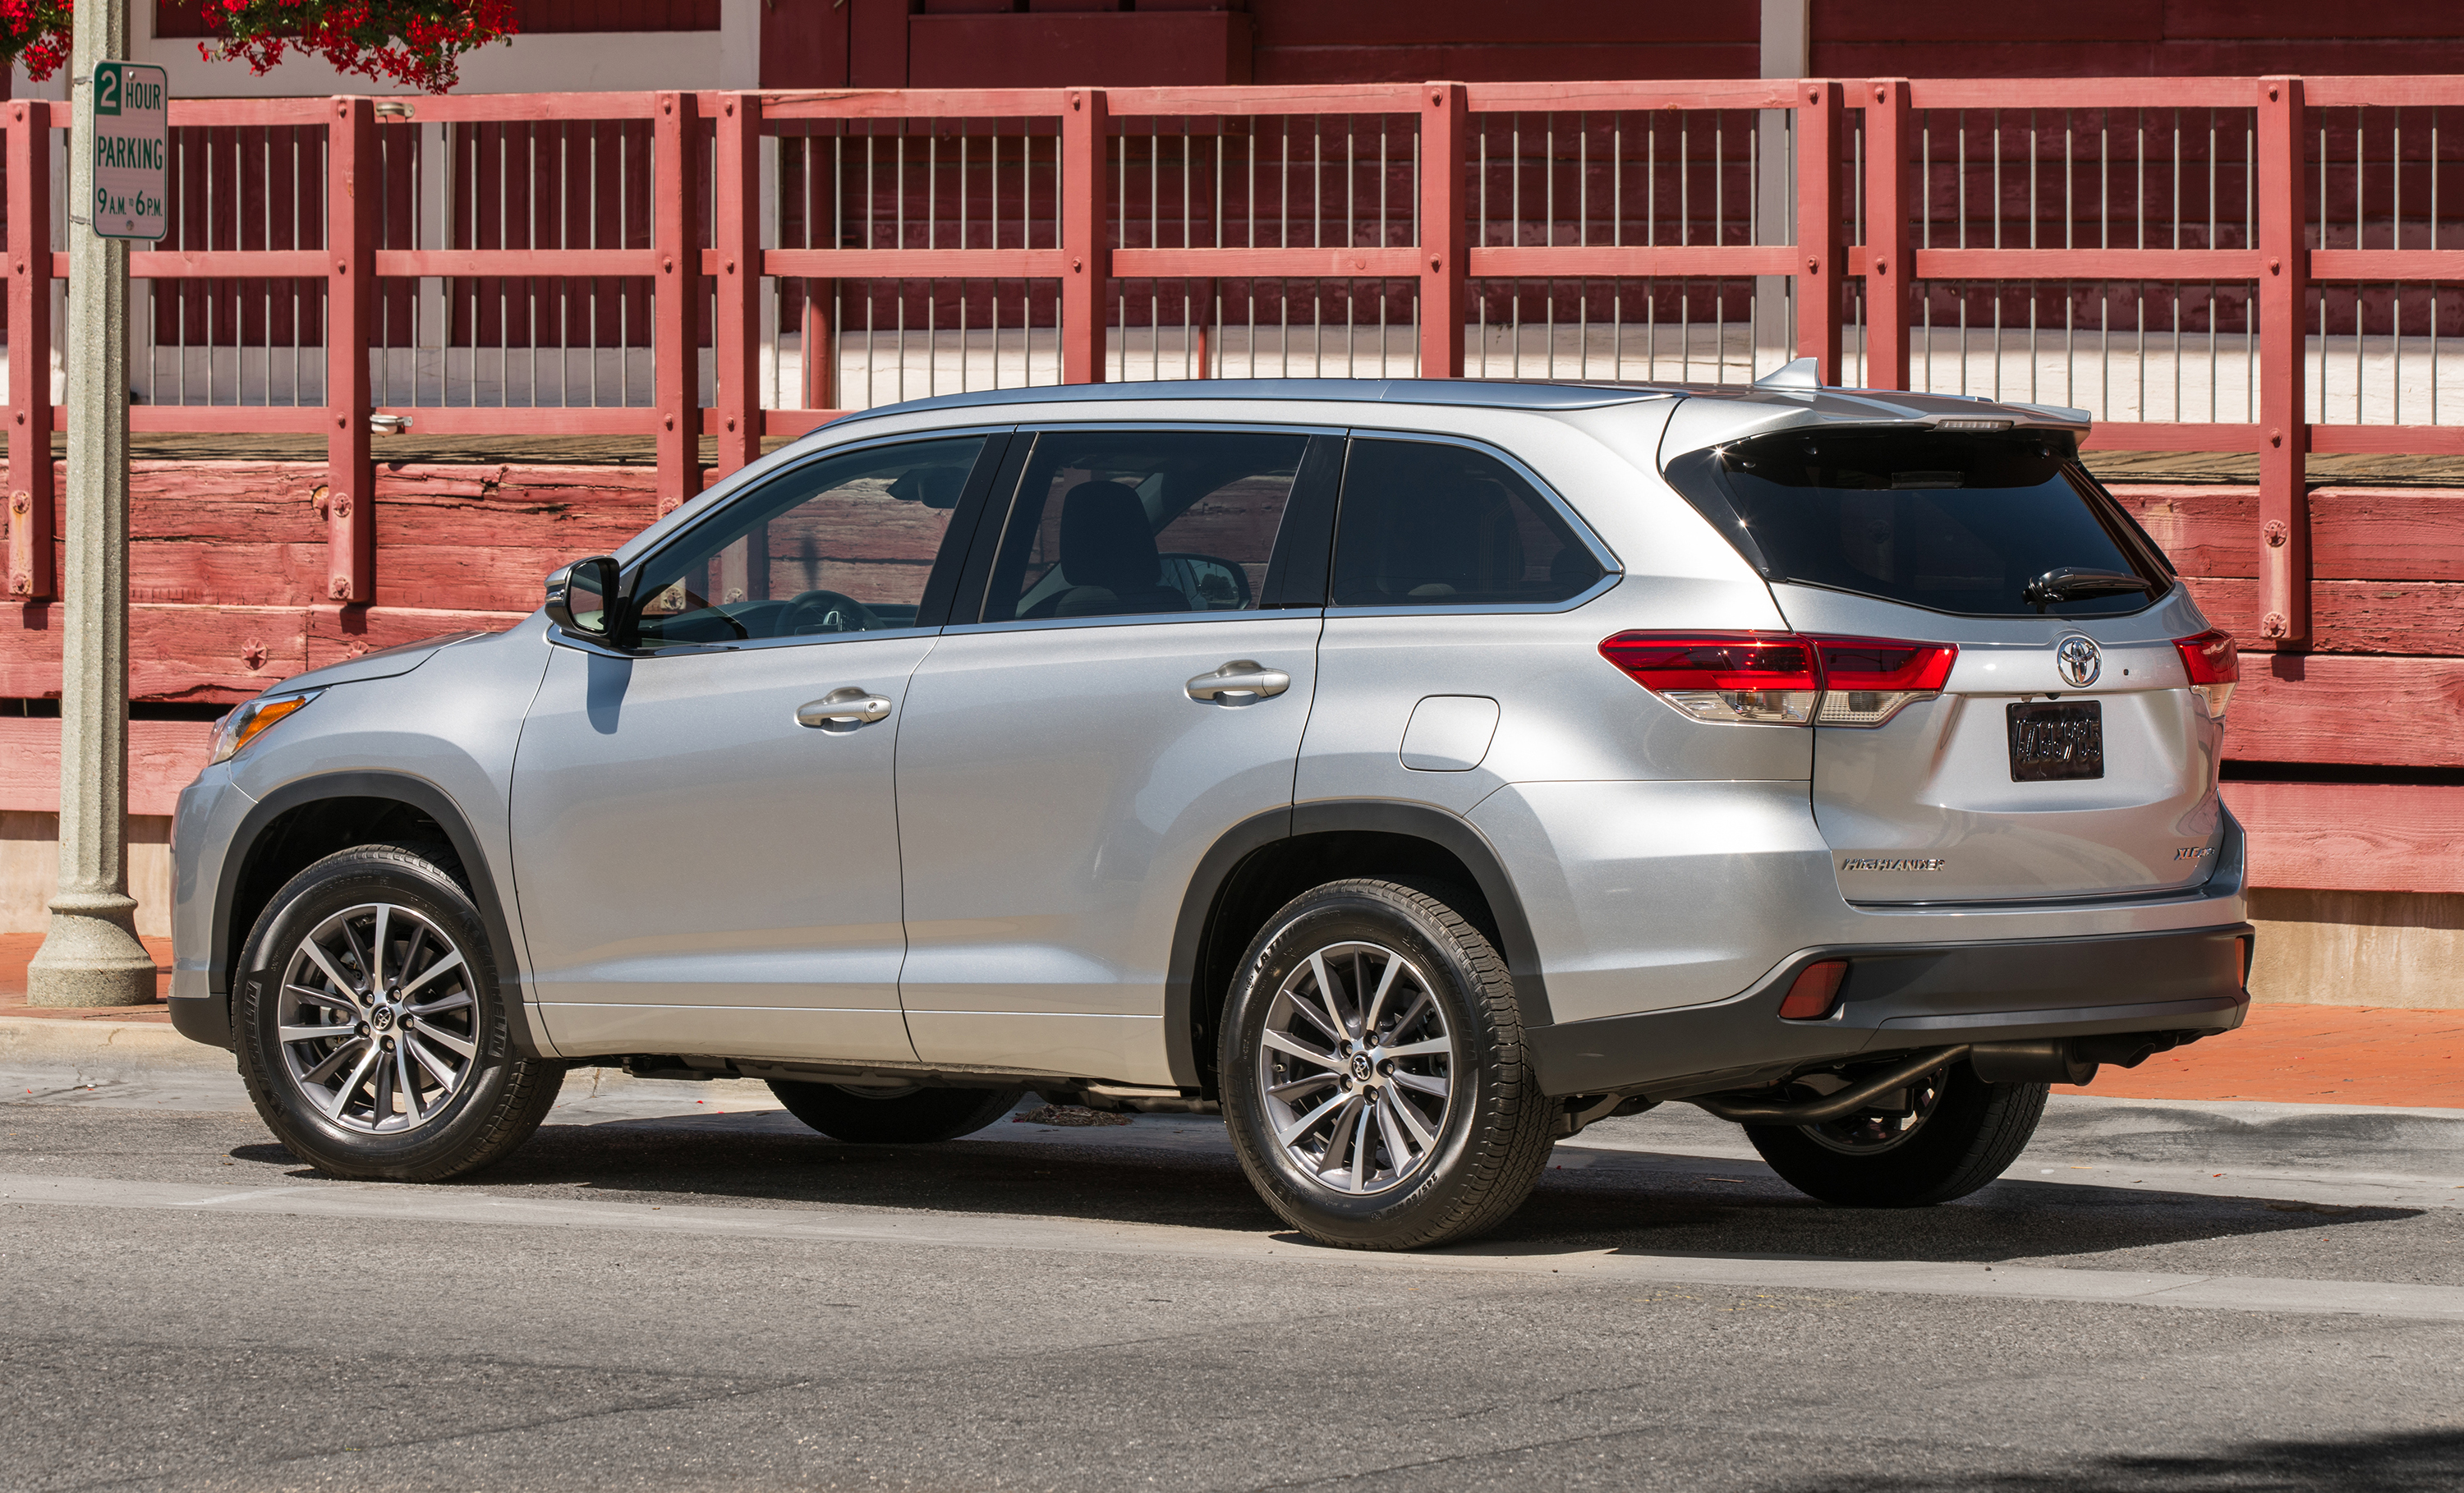 Toyota Kluger photo 173460